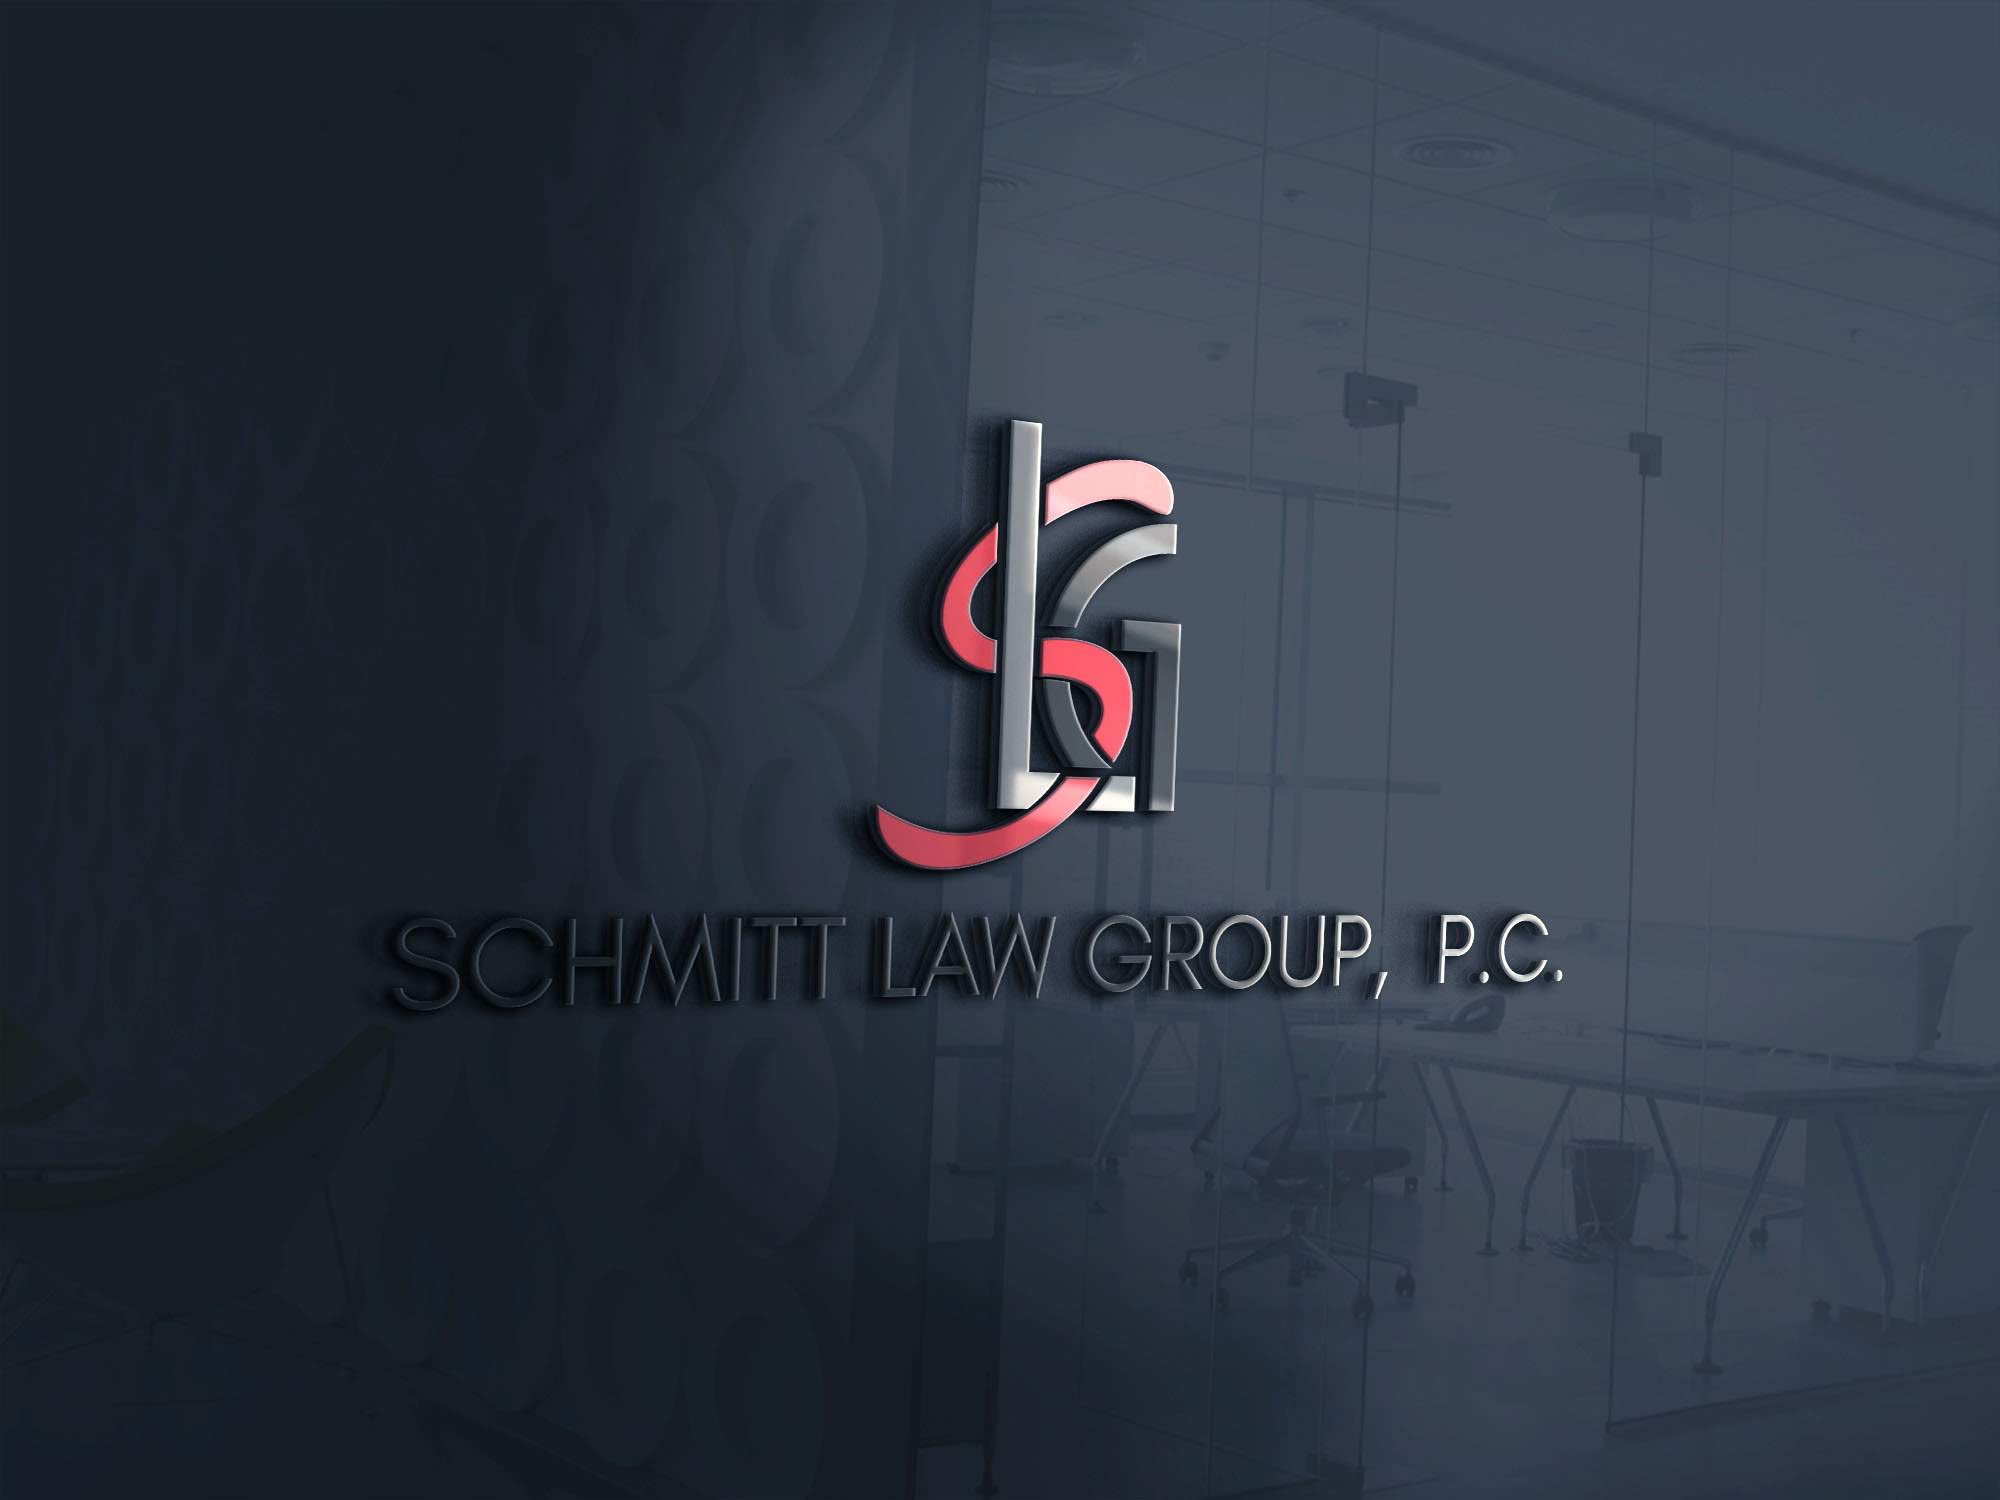 Schmitt Law Group Logo 3D